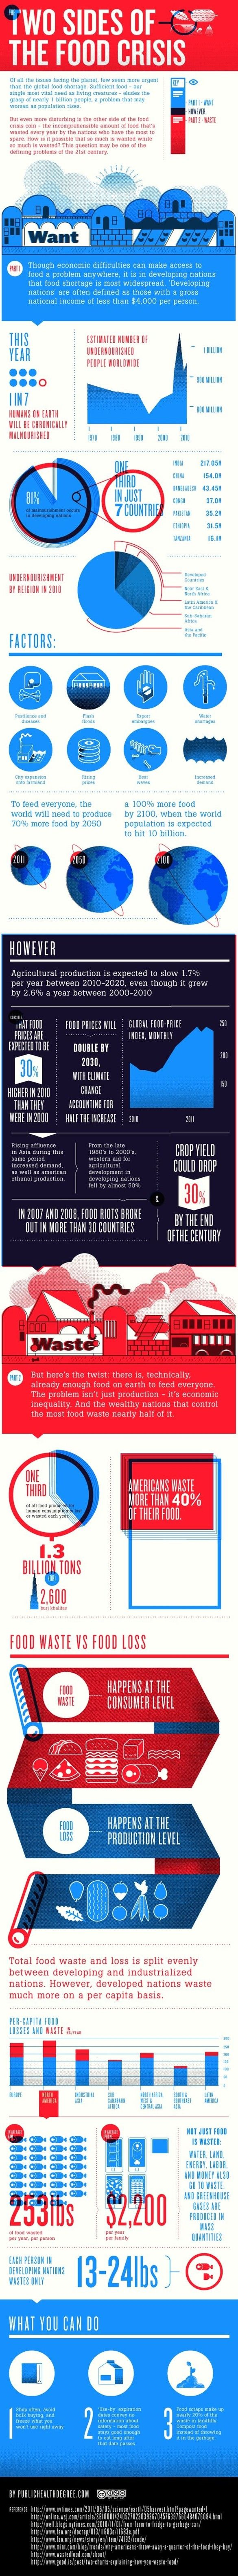 People Are Starving, But There's Enough Food | Co.Exist: World changing ideas and innovation